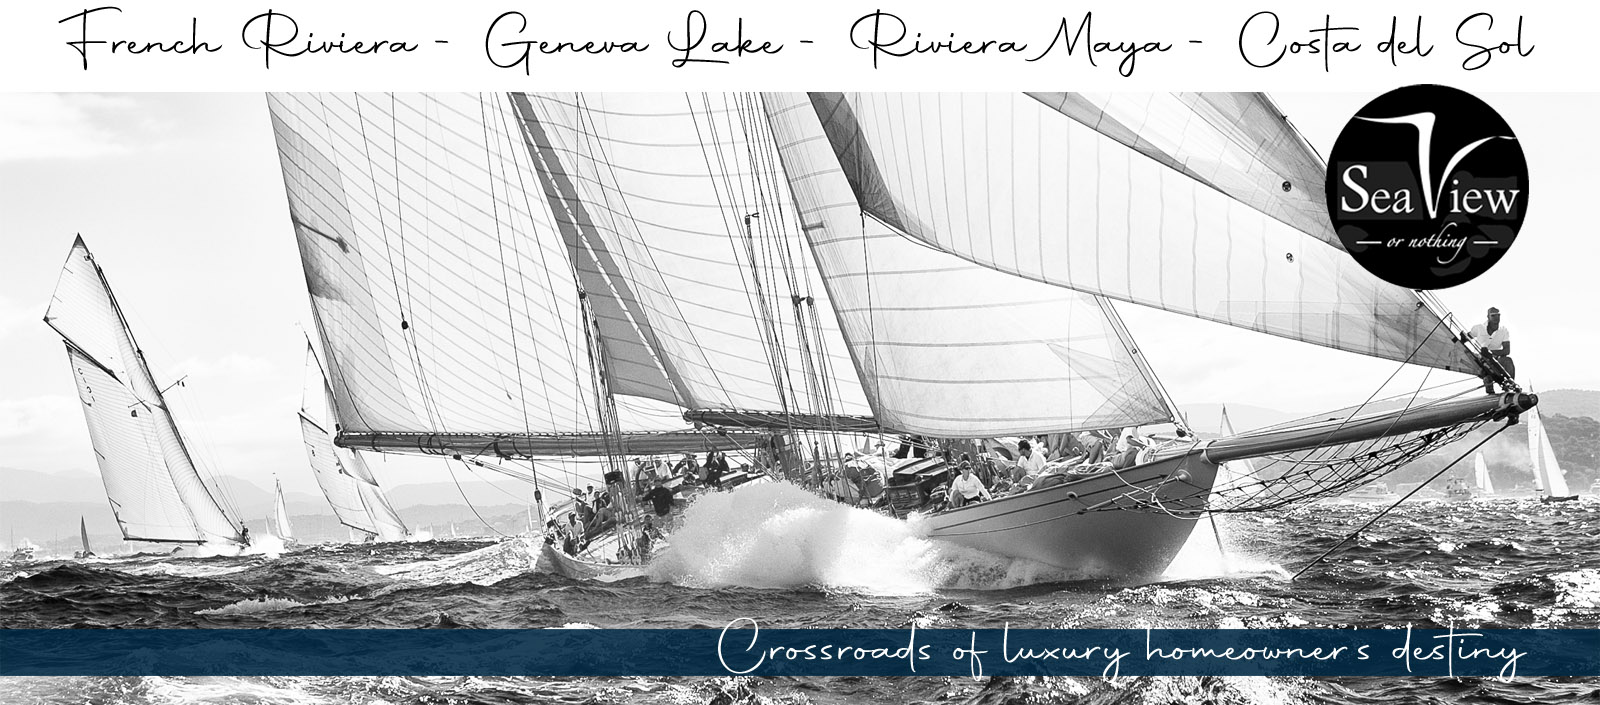 Sea View Or Nothing - Full page banner